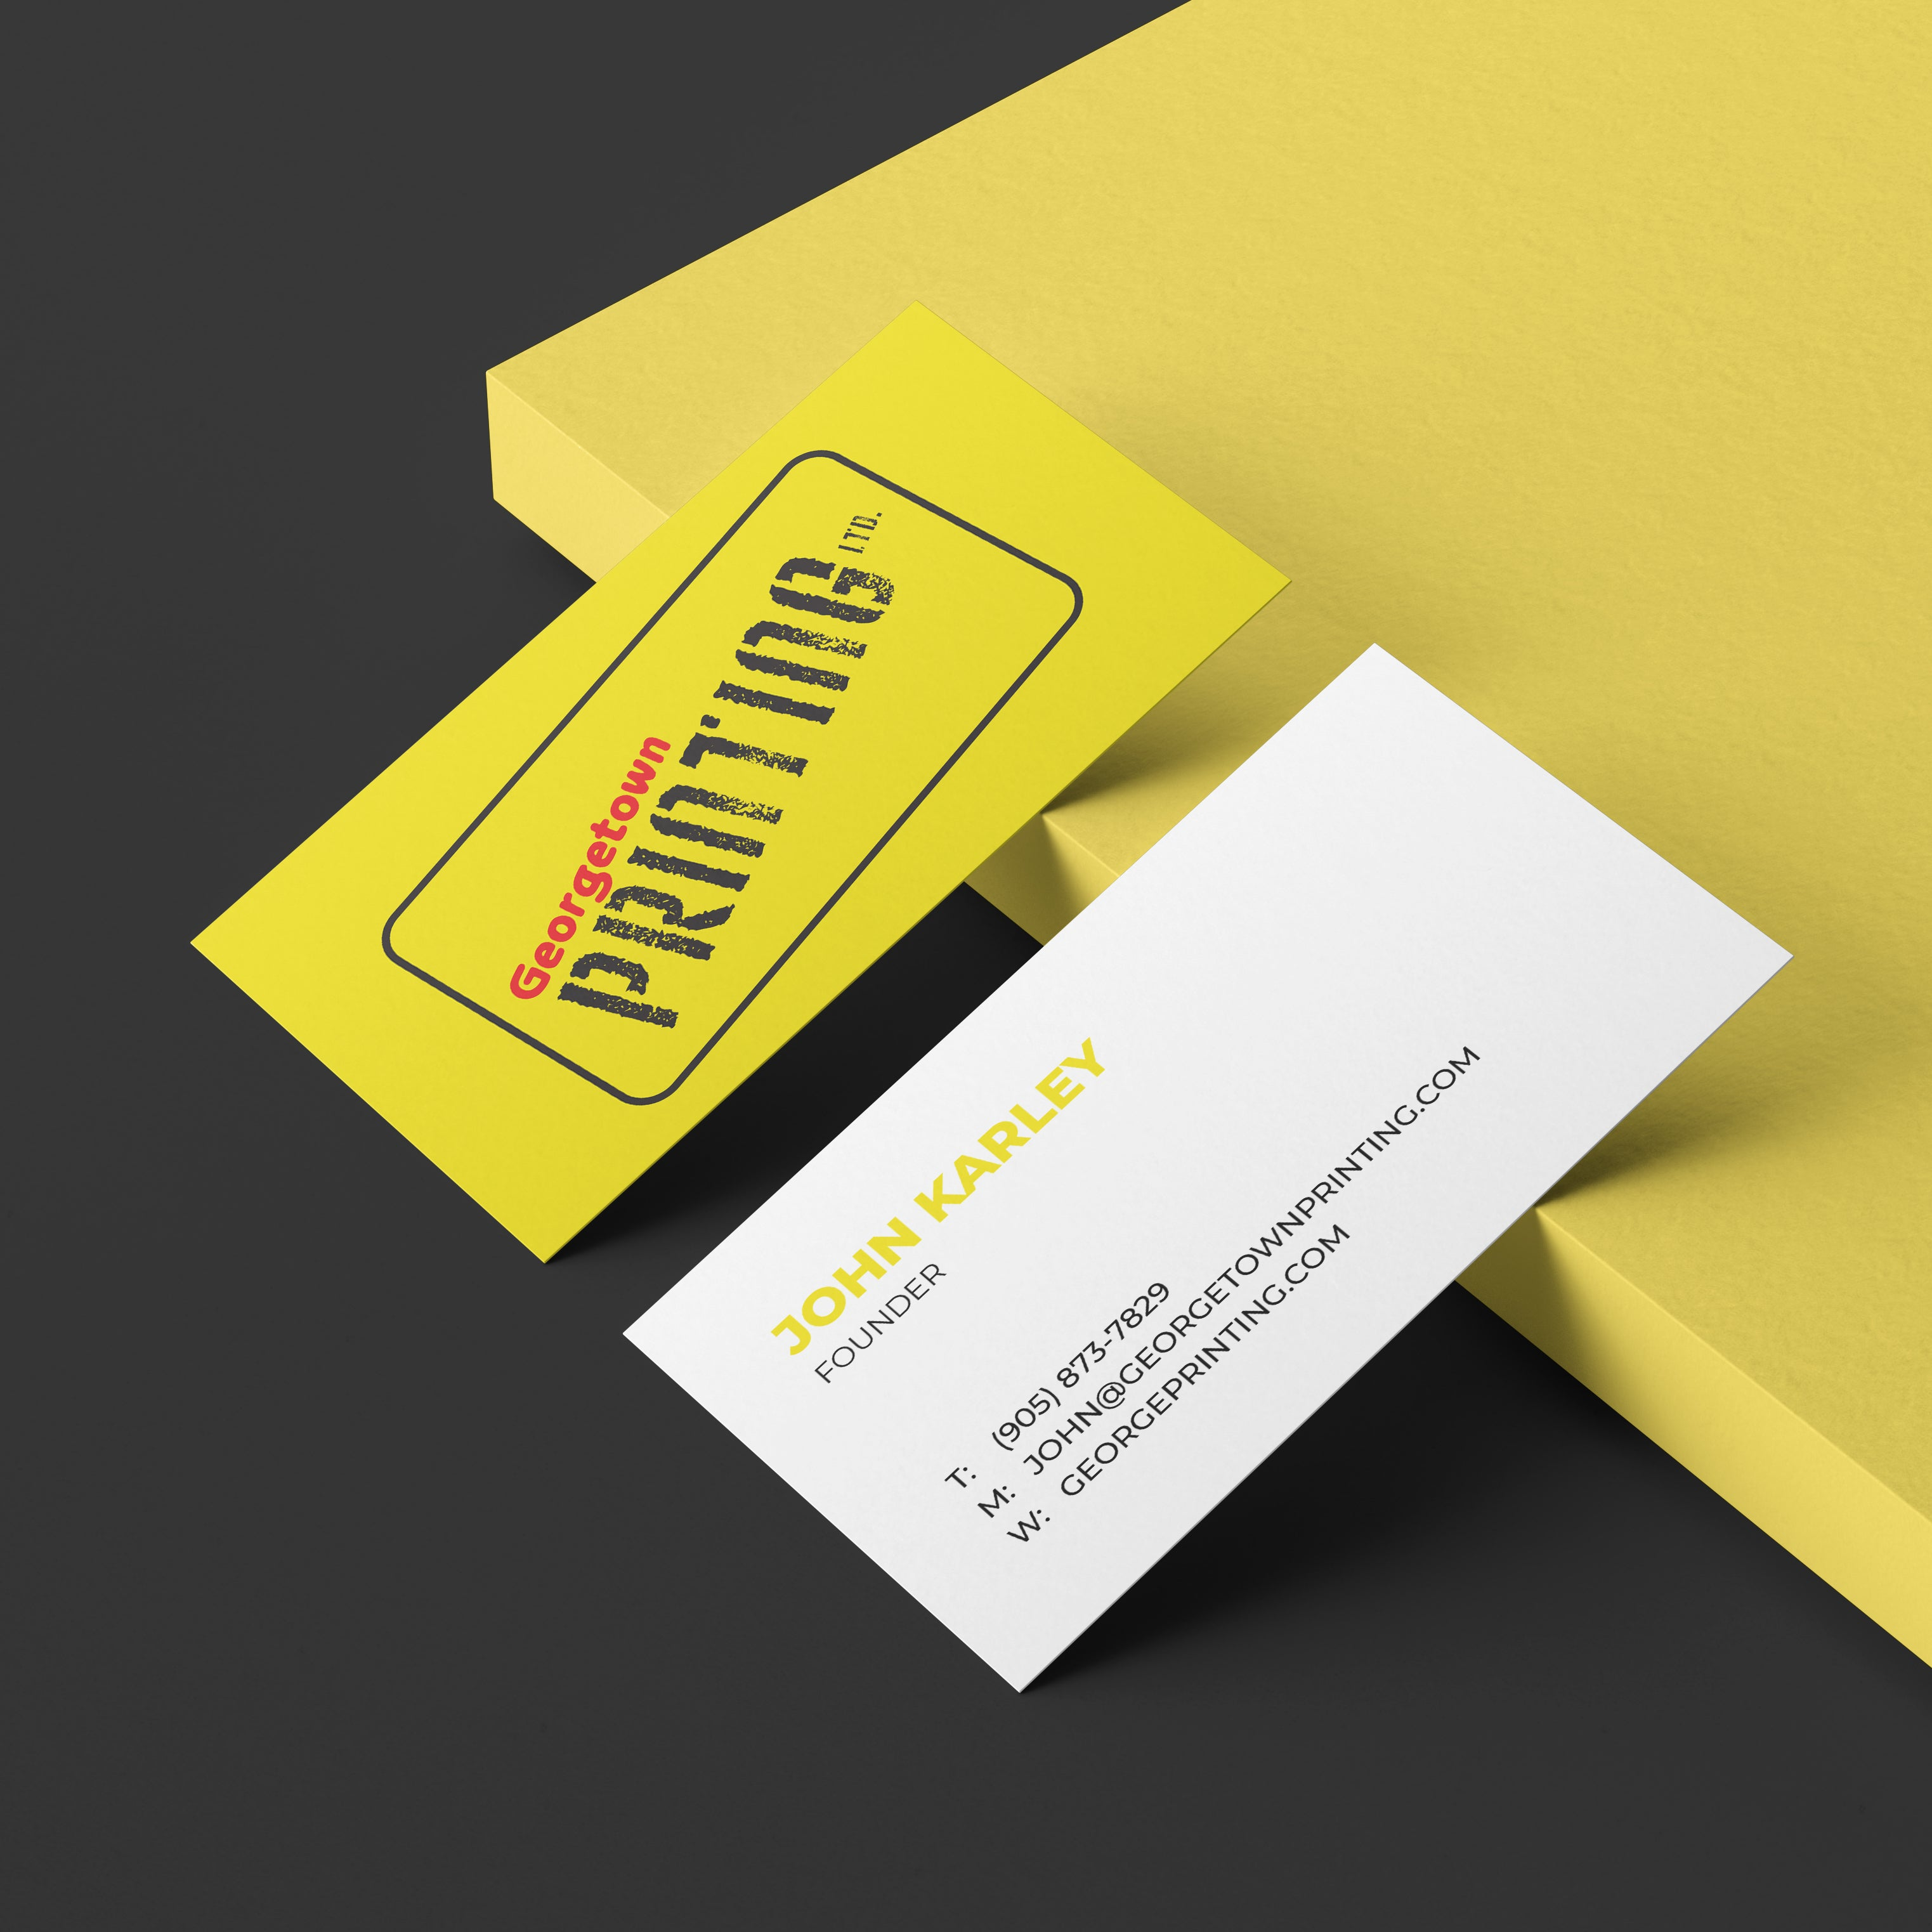 Georgetown printing business cards